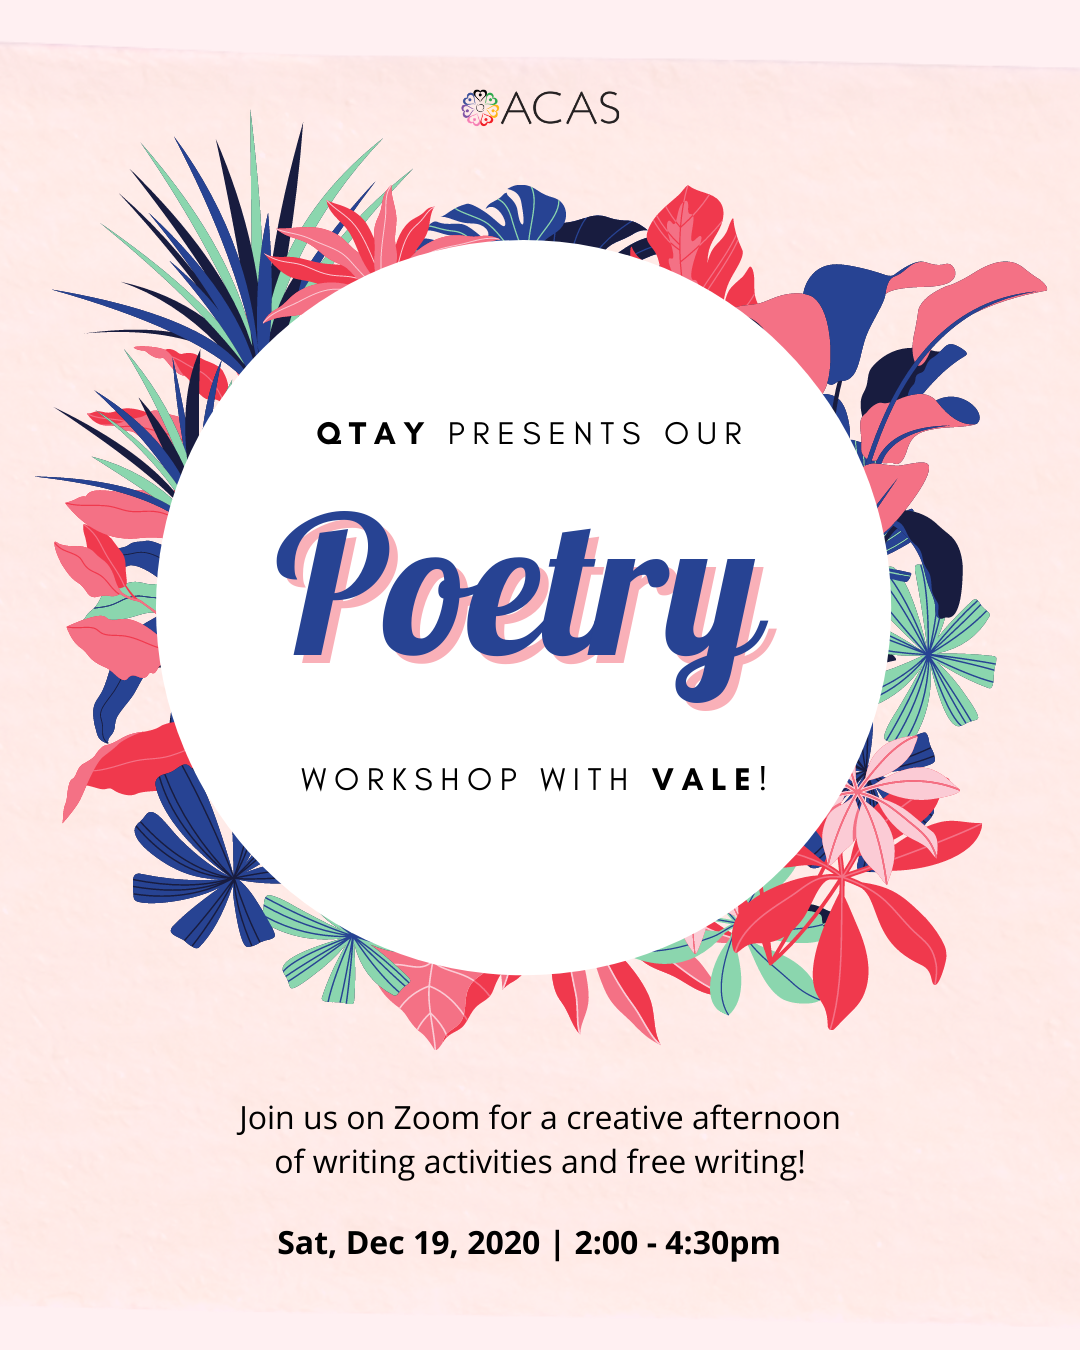 """A circle surrounded by illustrated foliage. There is text describing the poetry workshop event: """"Join us on Zoom for a creative afternoon of writing activities and free writing!"""